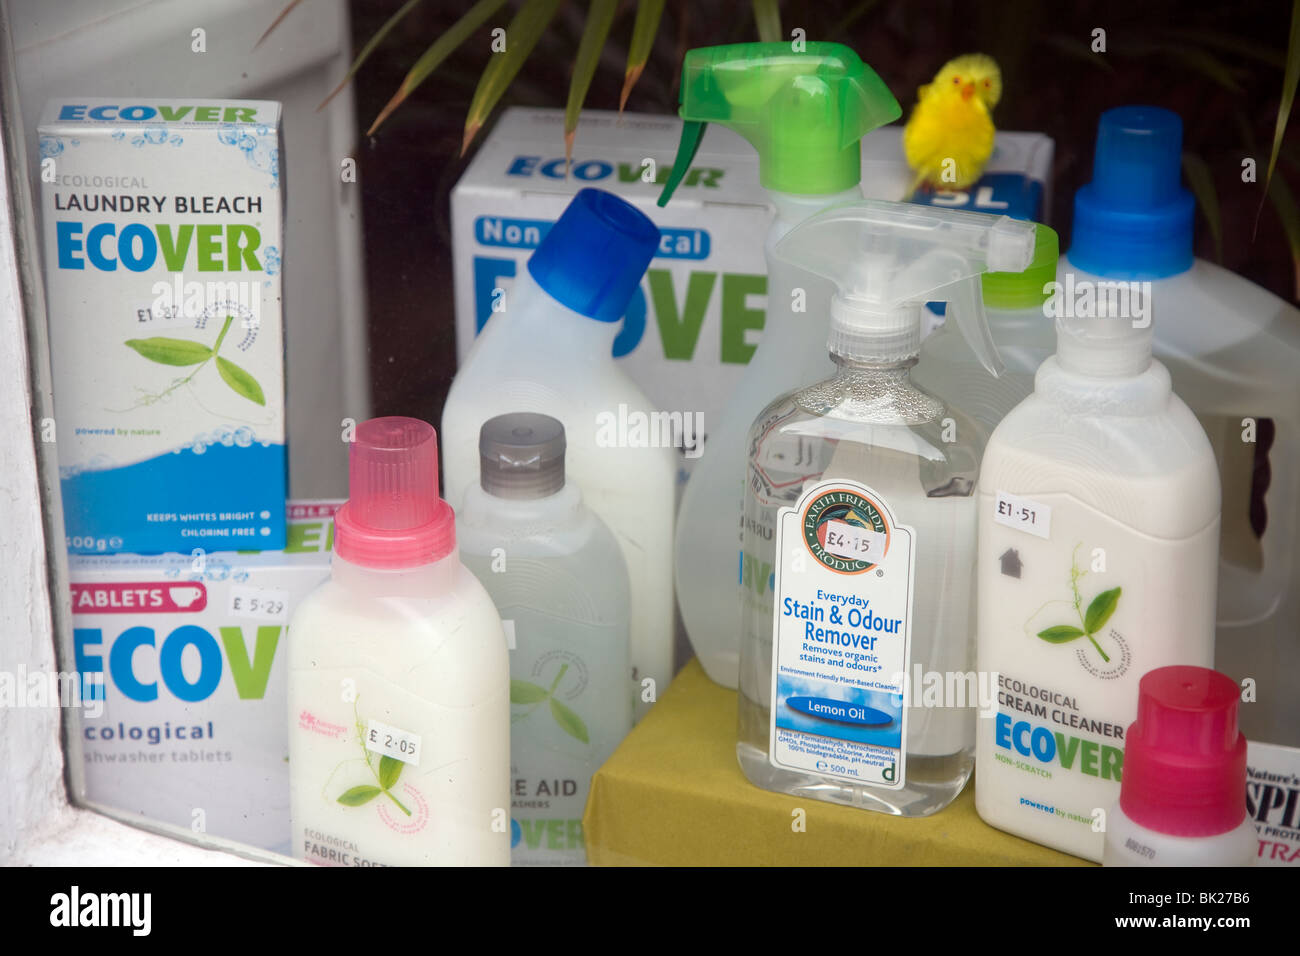 Ecological cleaning products shop window display - Stock Image